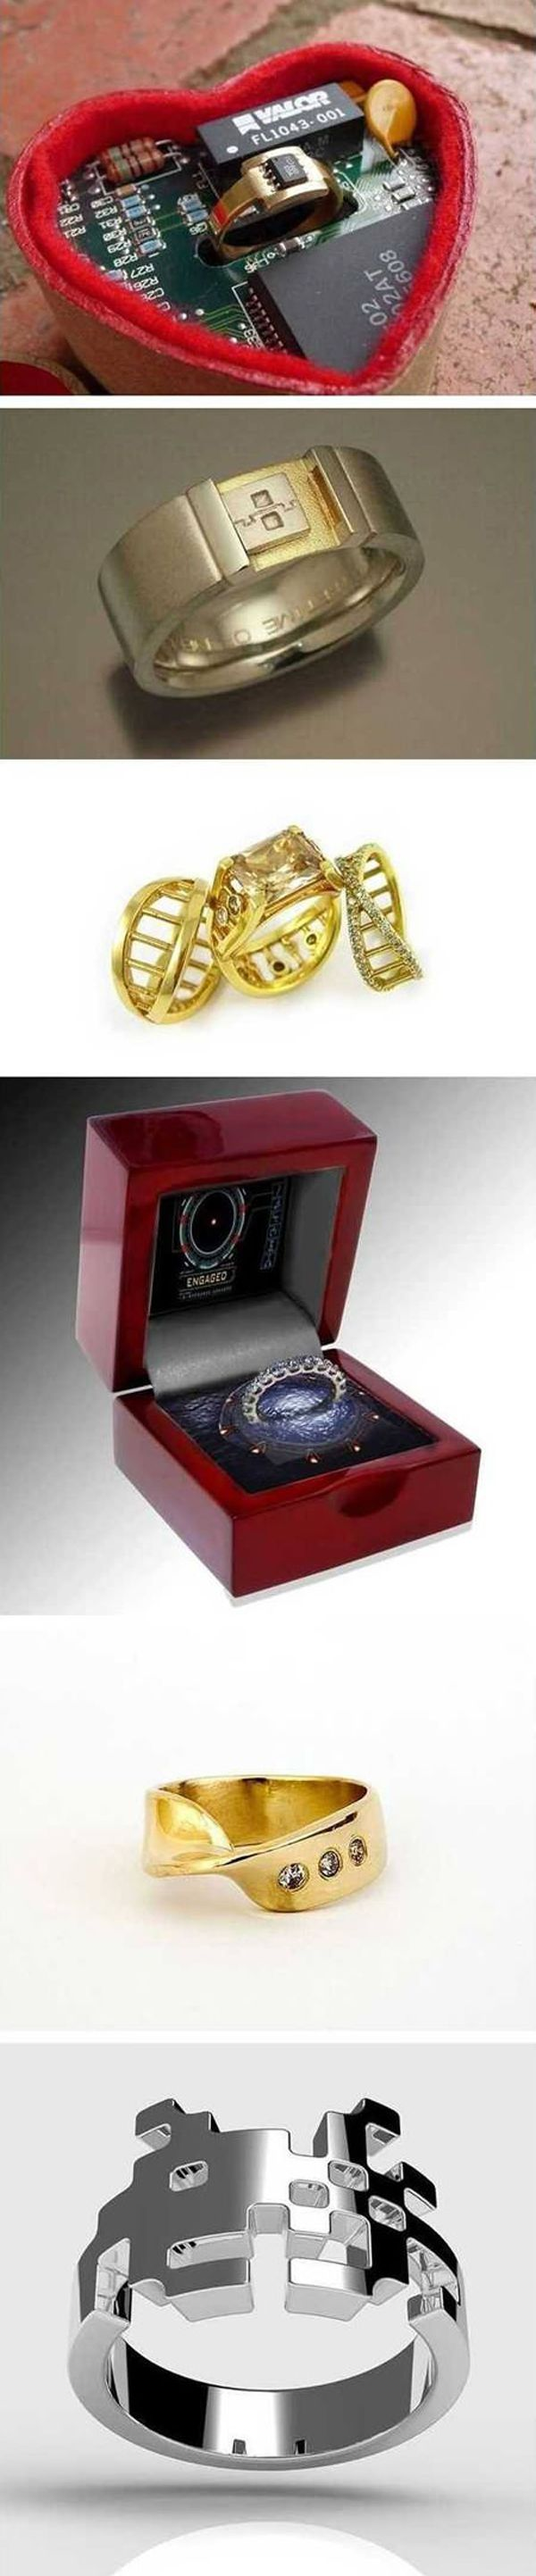 My Kind Of Wedding Ring!